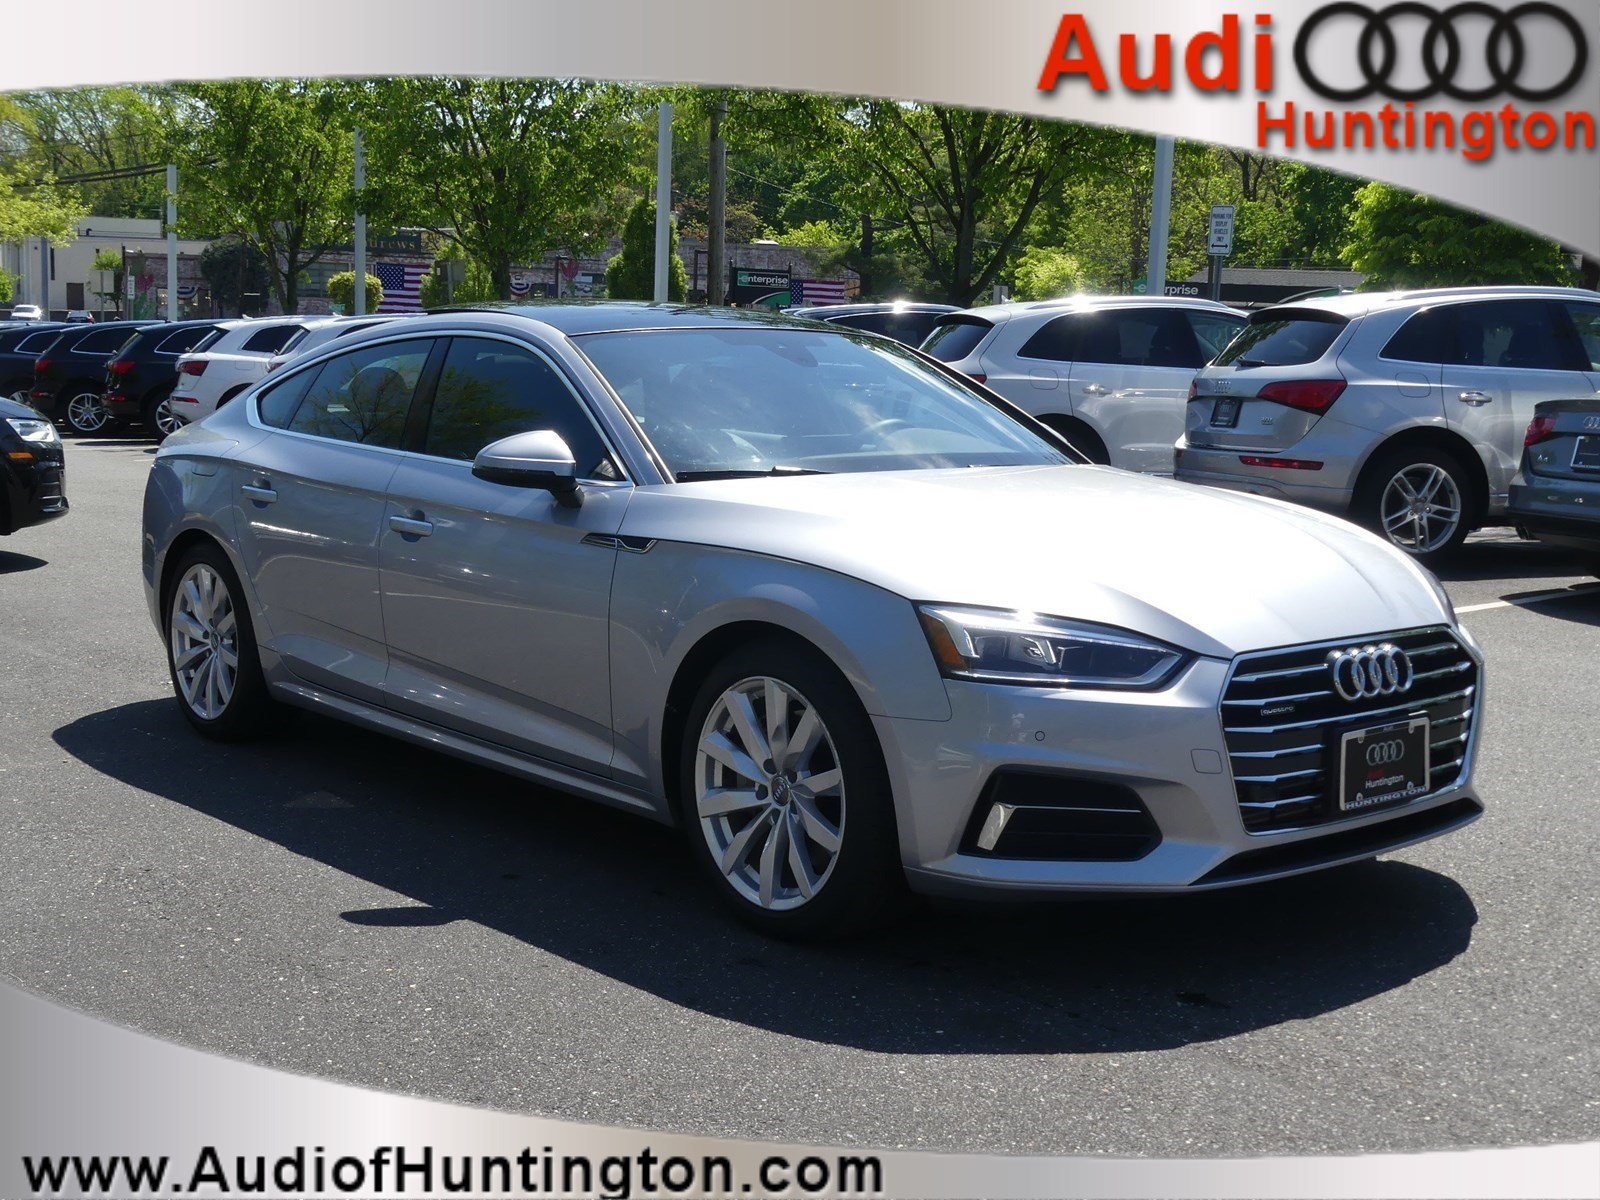 Used 2018 Audi A5 Premium Plus Sportback for Sale in Huntington Station, NY